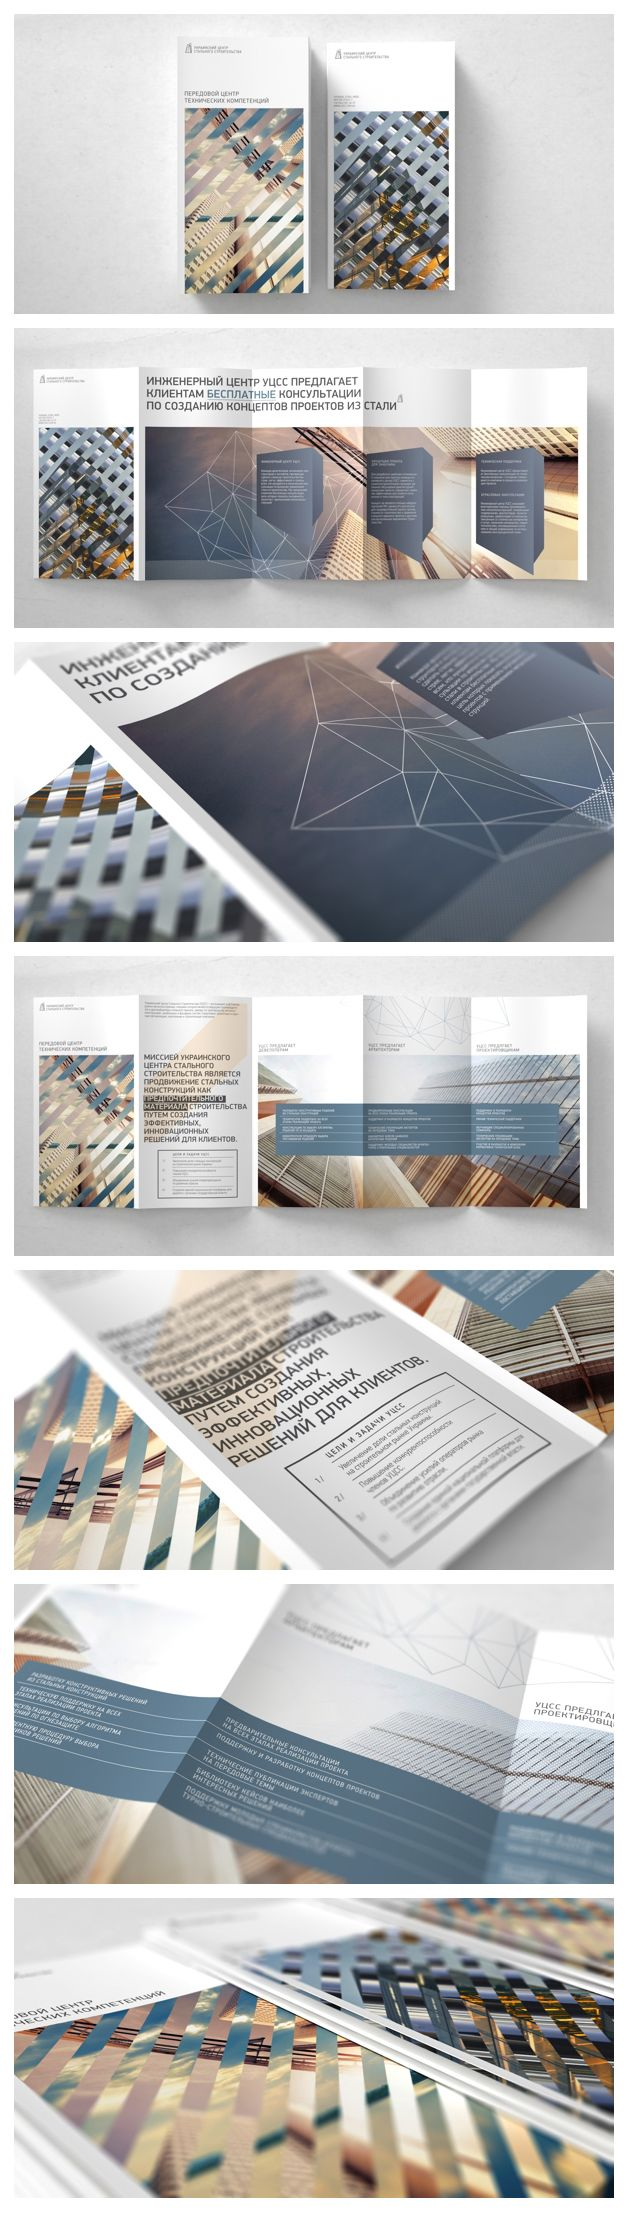 'Interlace' USCC Booklet Steel technologies is toughly interlaced with modern construction. Simple collage technique shows this. http://toughslatedesign.com/